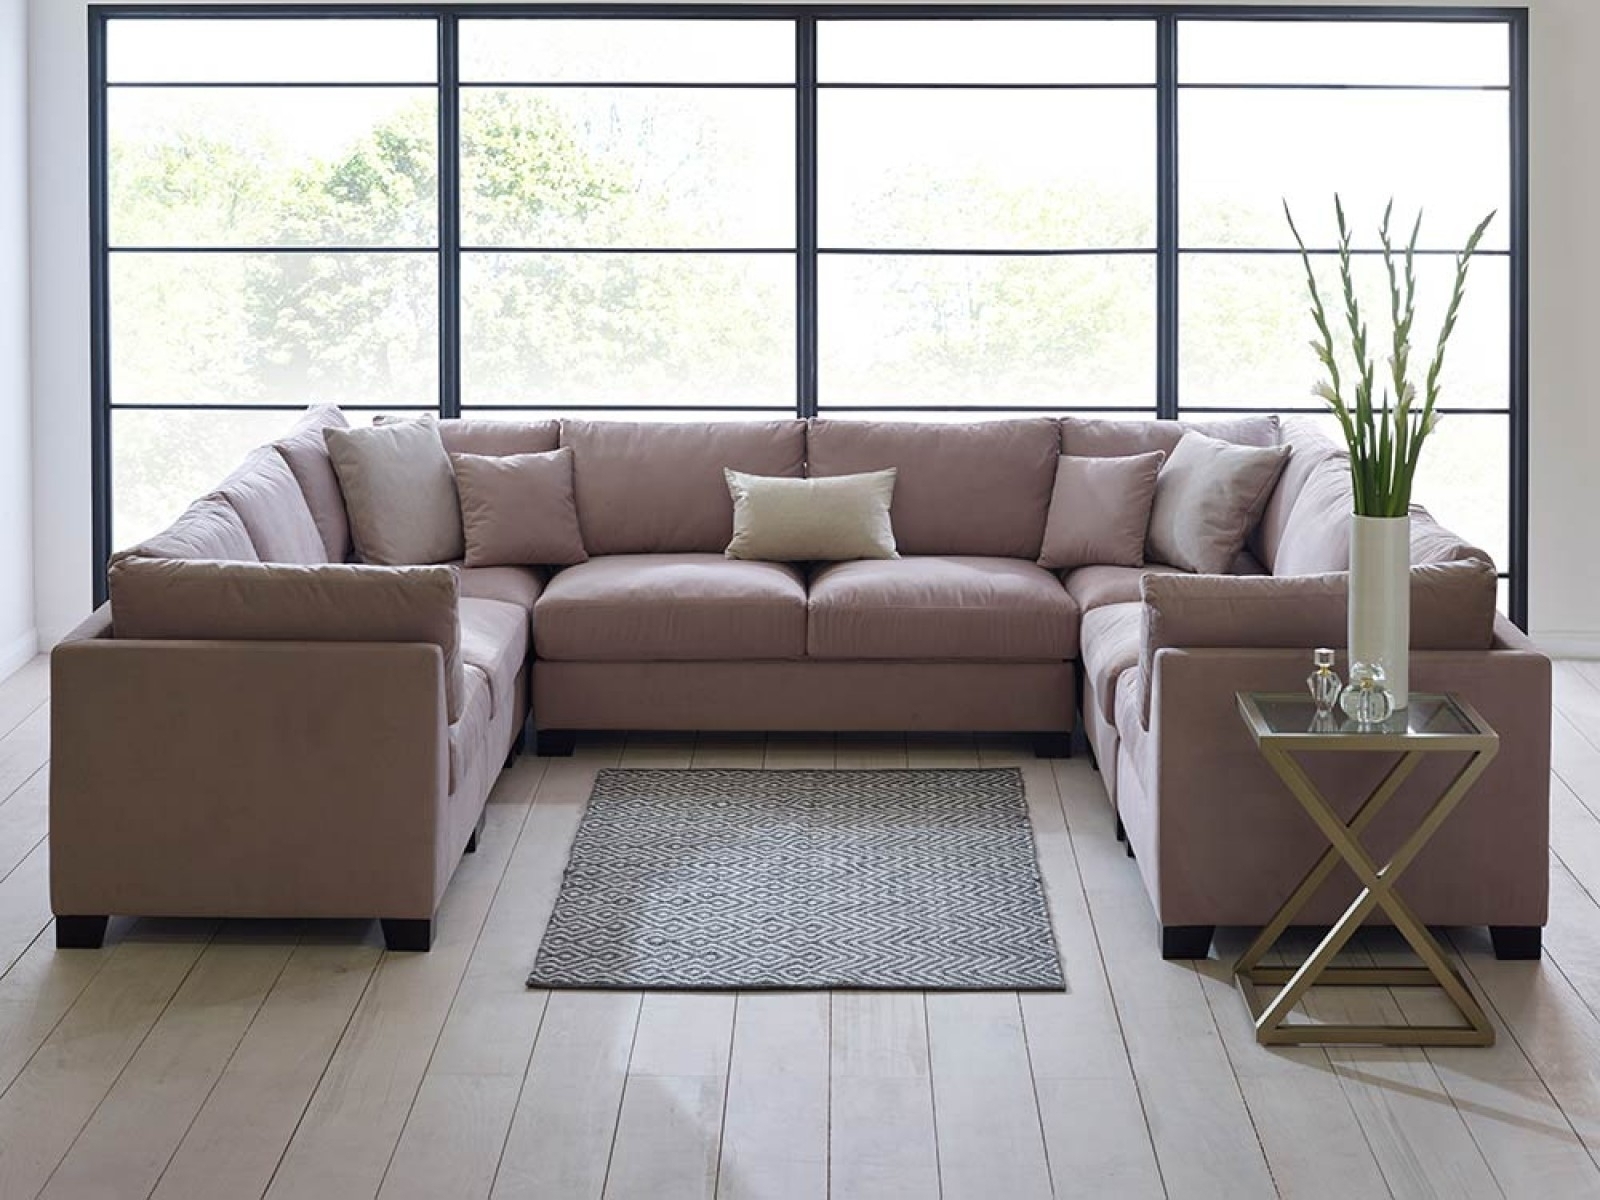 Widely Used U Shaped Sofa – Google Search (View 20 of 20)